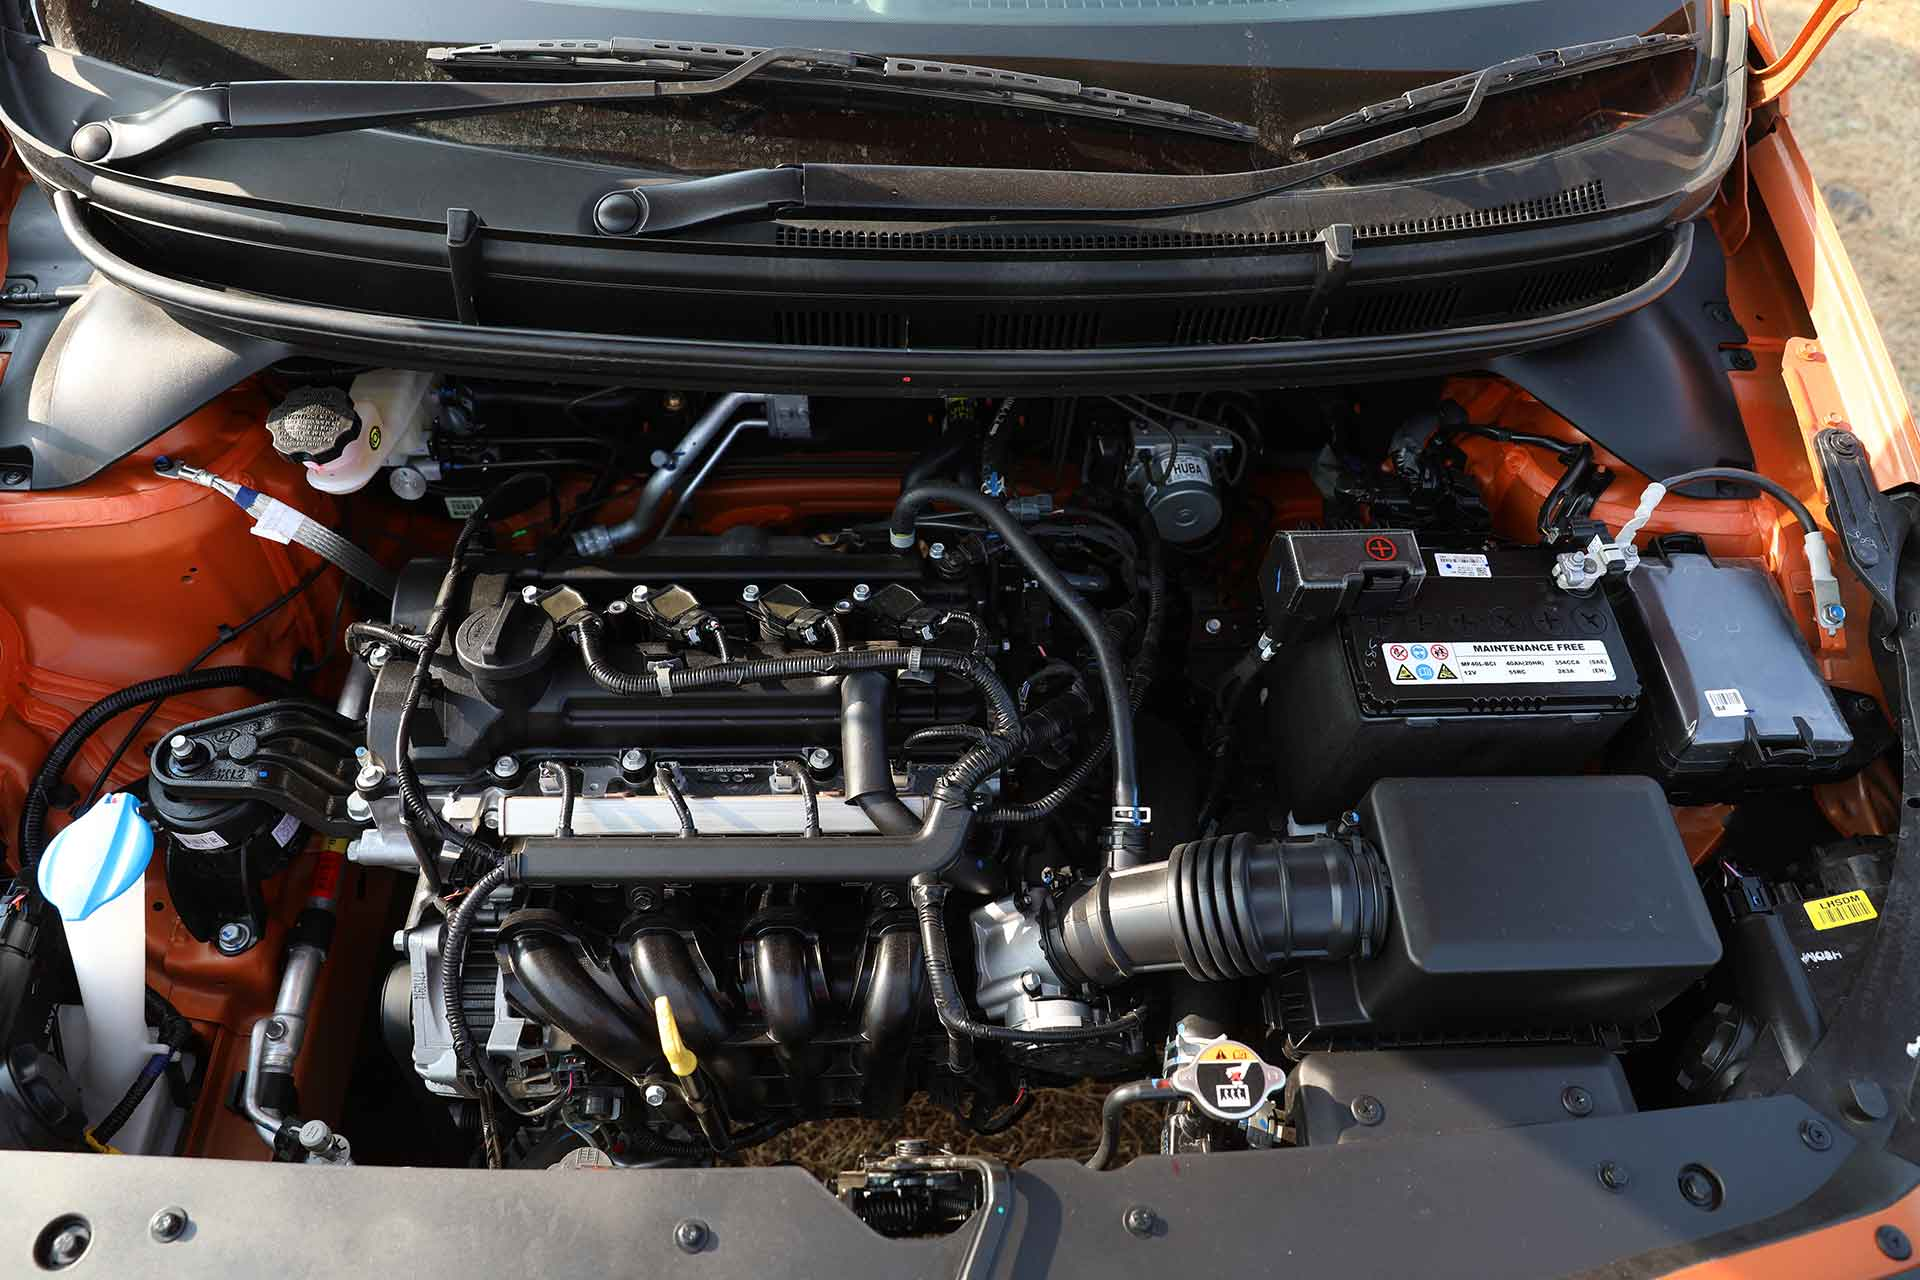 2018 Hyundai Elite i20 Engine